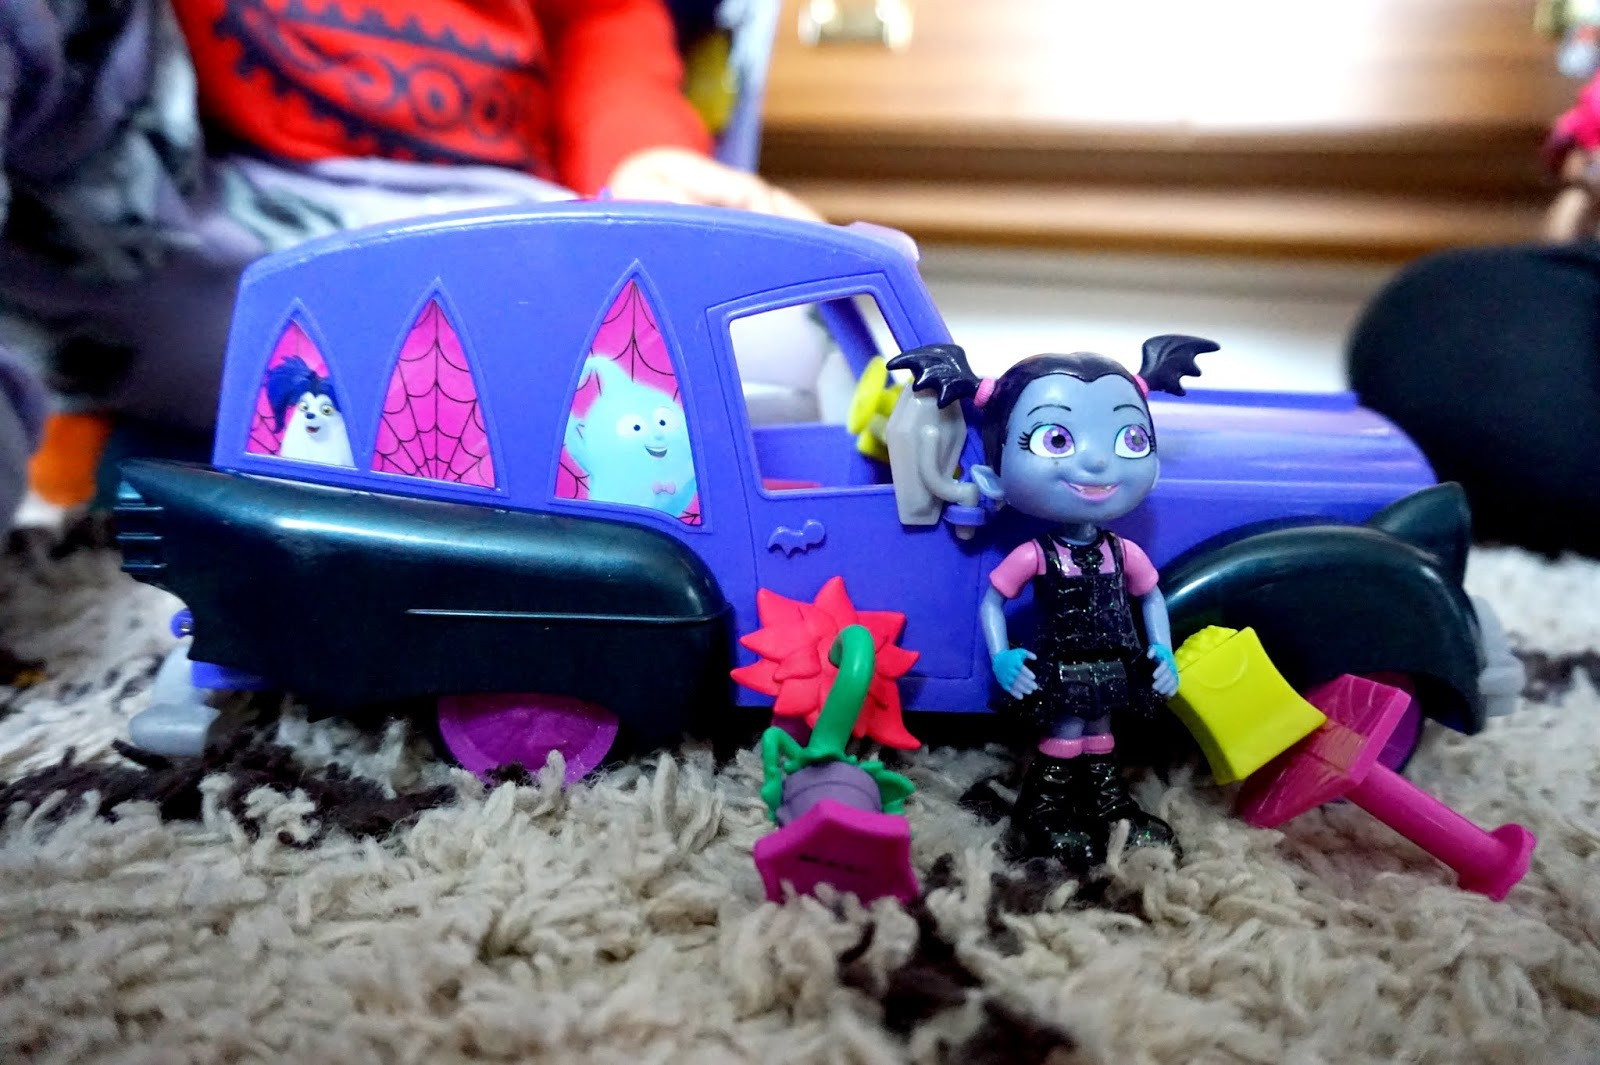 Vampirina Disney Toy Range Review Life As Mum